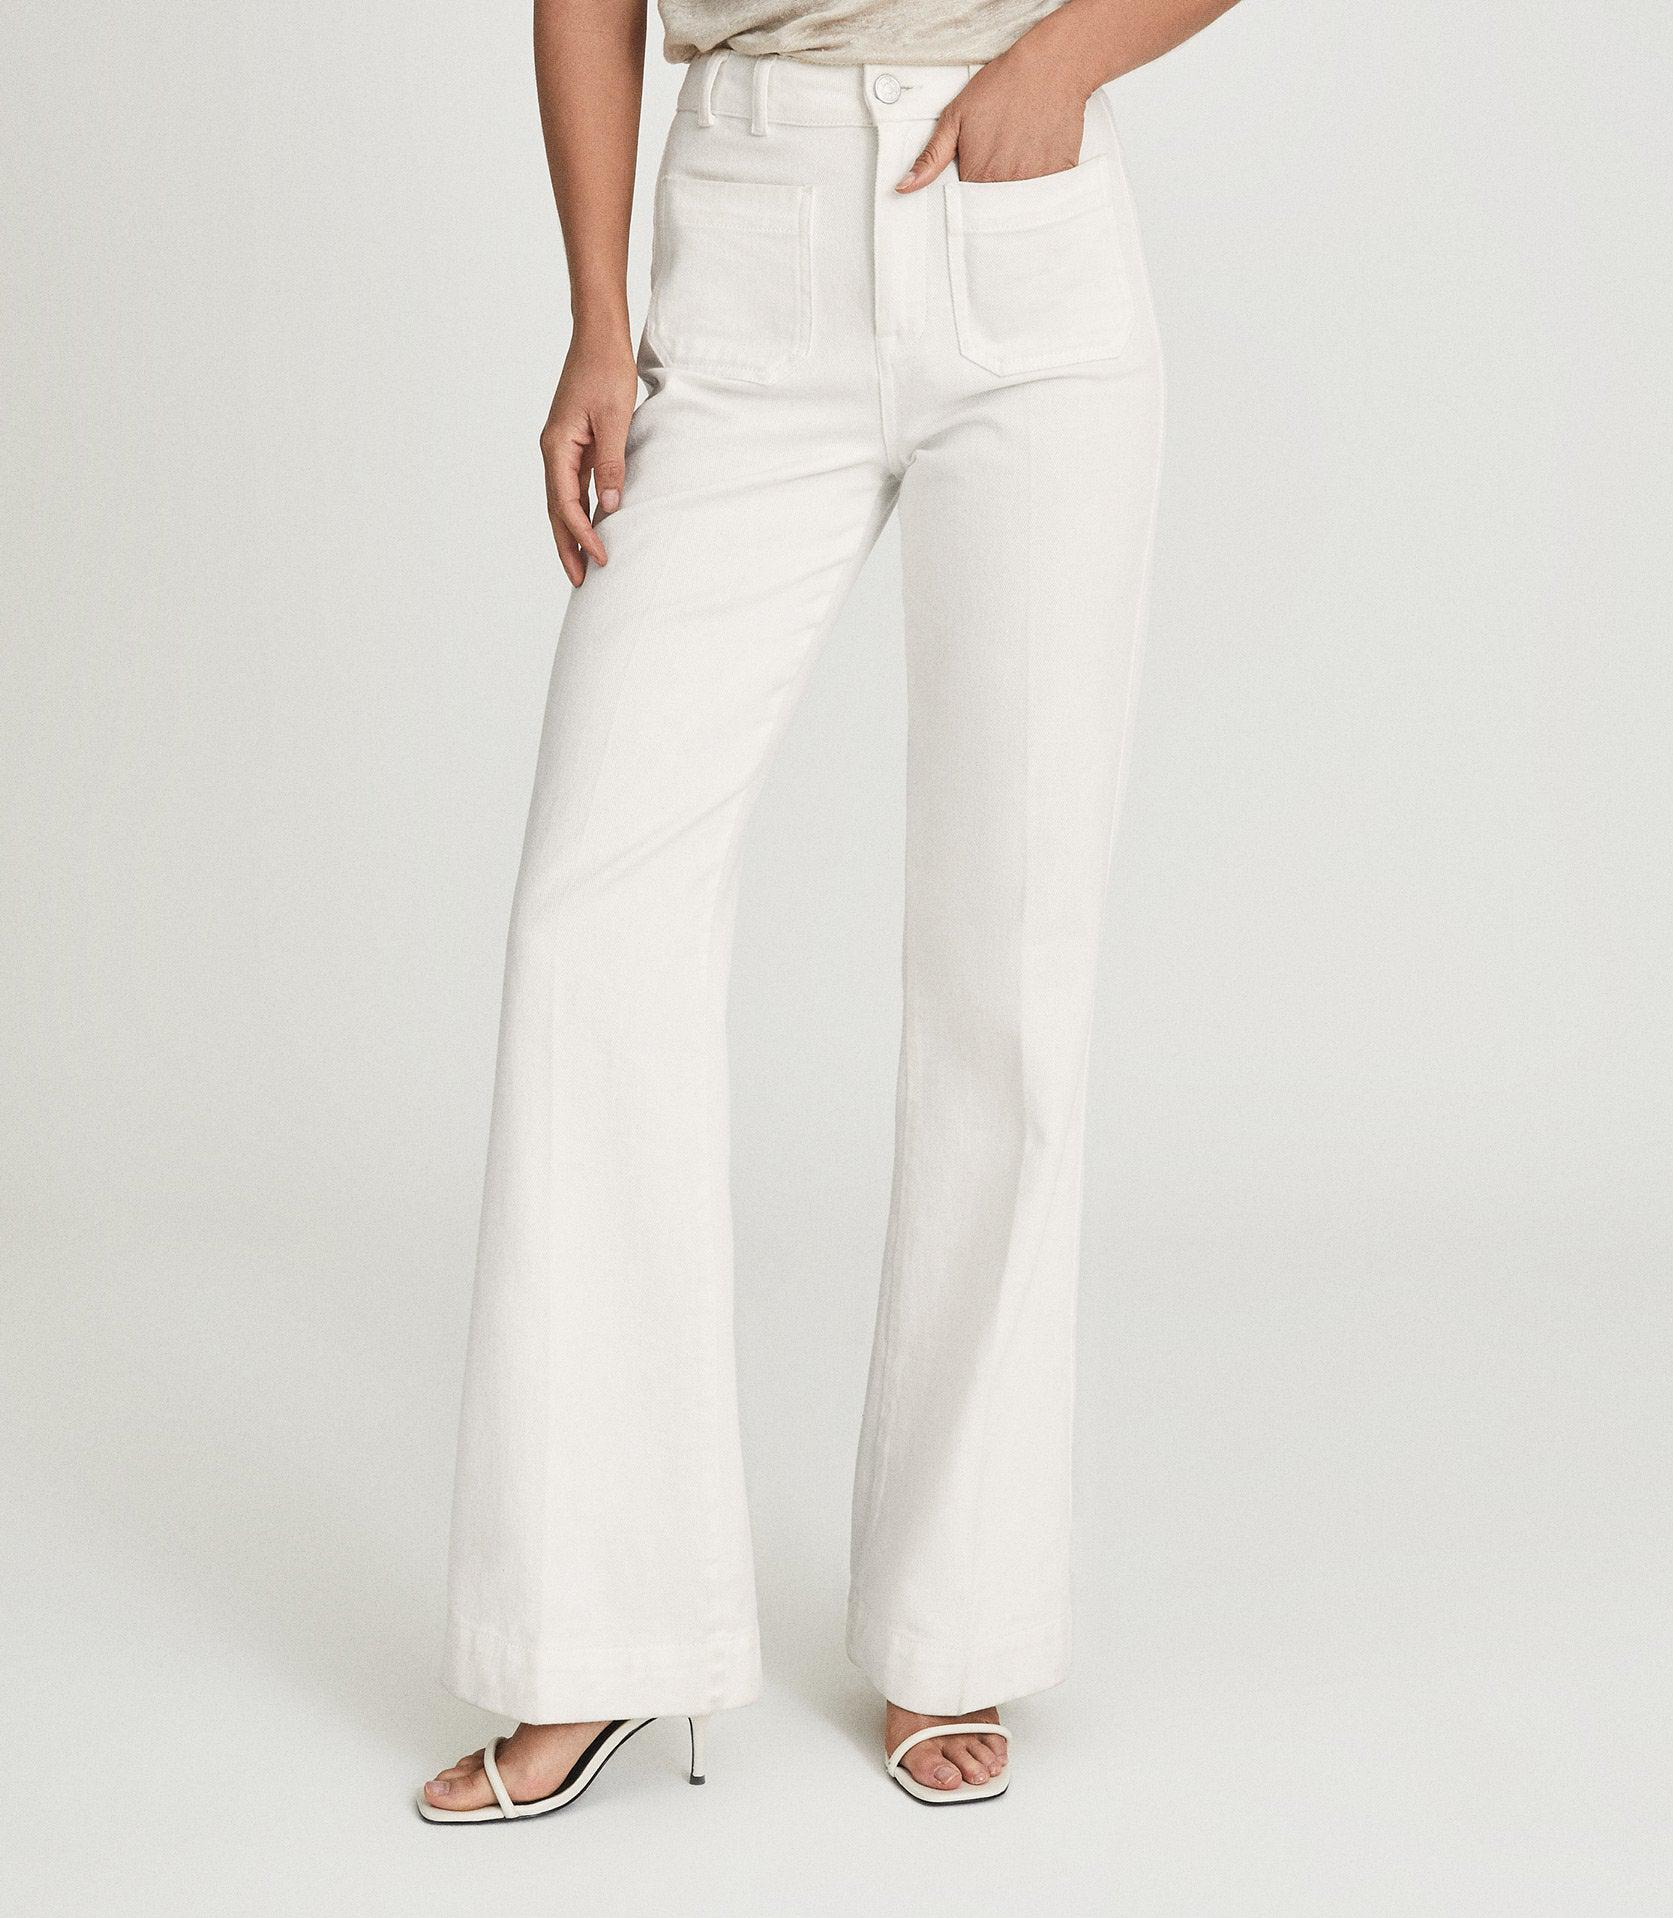 ISA - HIGH RISE FLARED JEANS 2